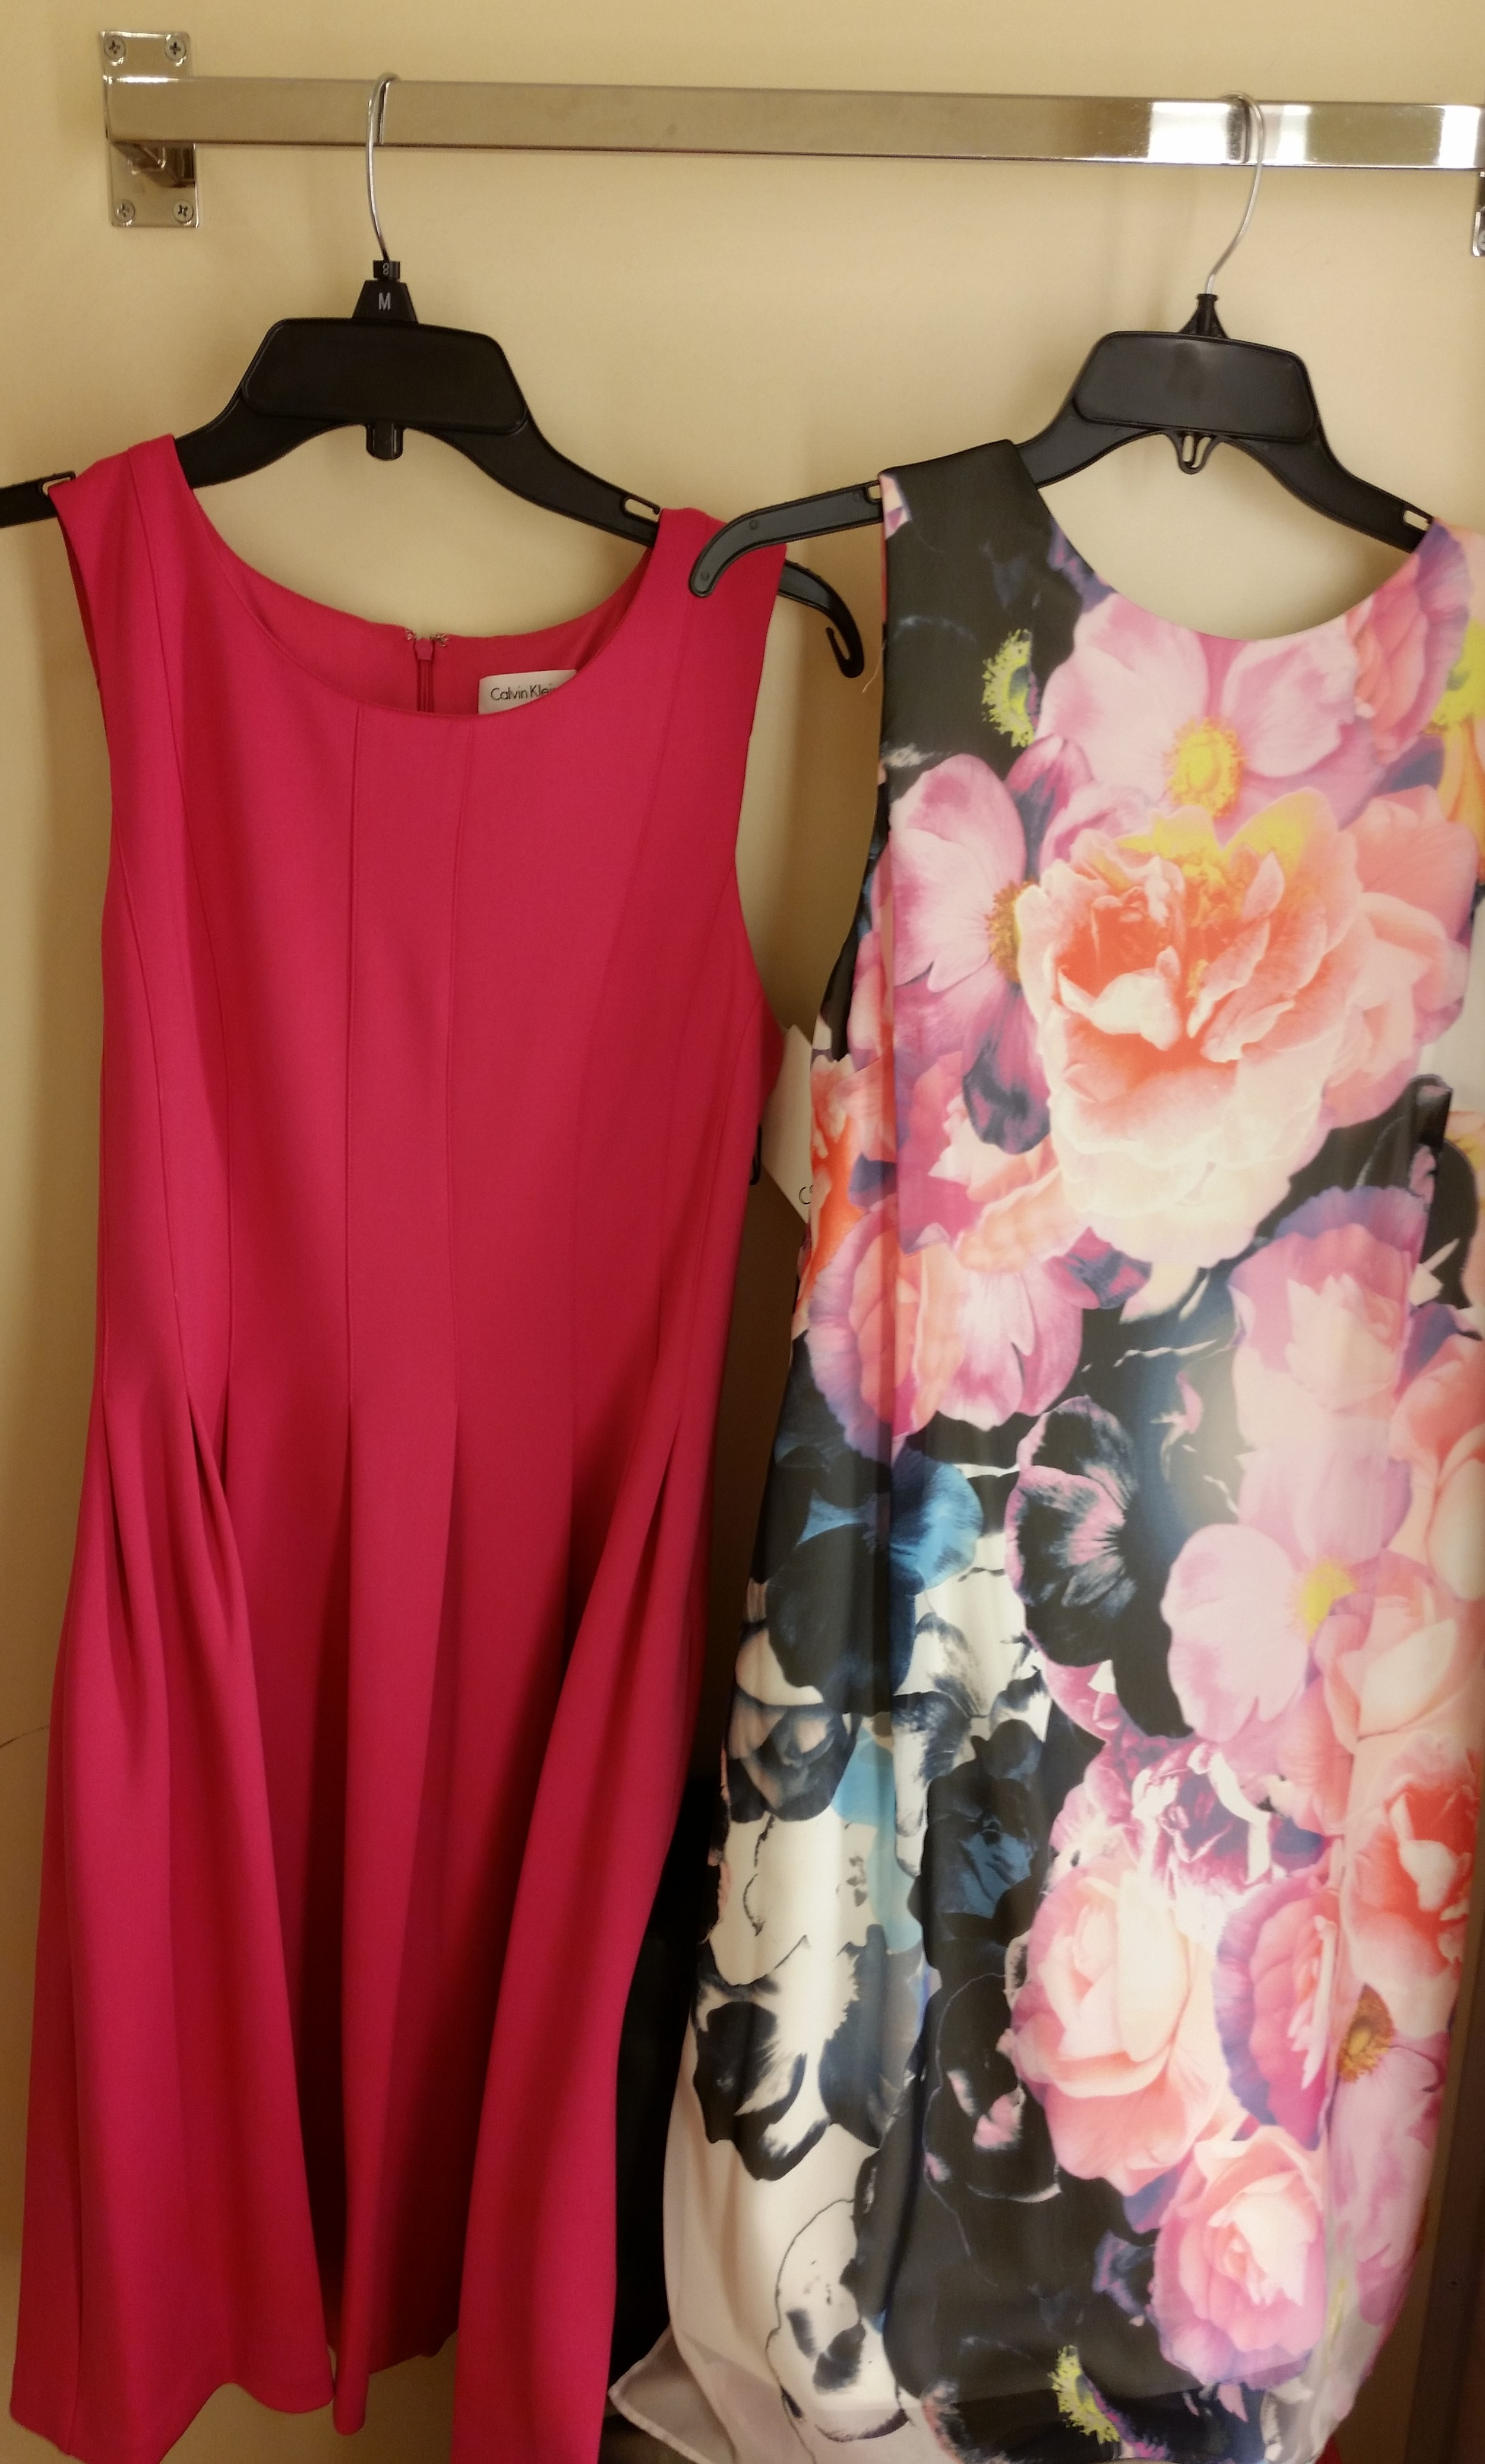 On the left is a Calvin Klein simple pleated sleeveless dress in a beautiful shade of magenta or hot pink. On the right is a sleeveless printed Vince Camuto number. There is a cream colored sheath underneath a beautiful floral printed overlay.